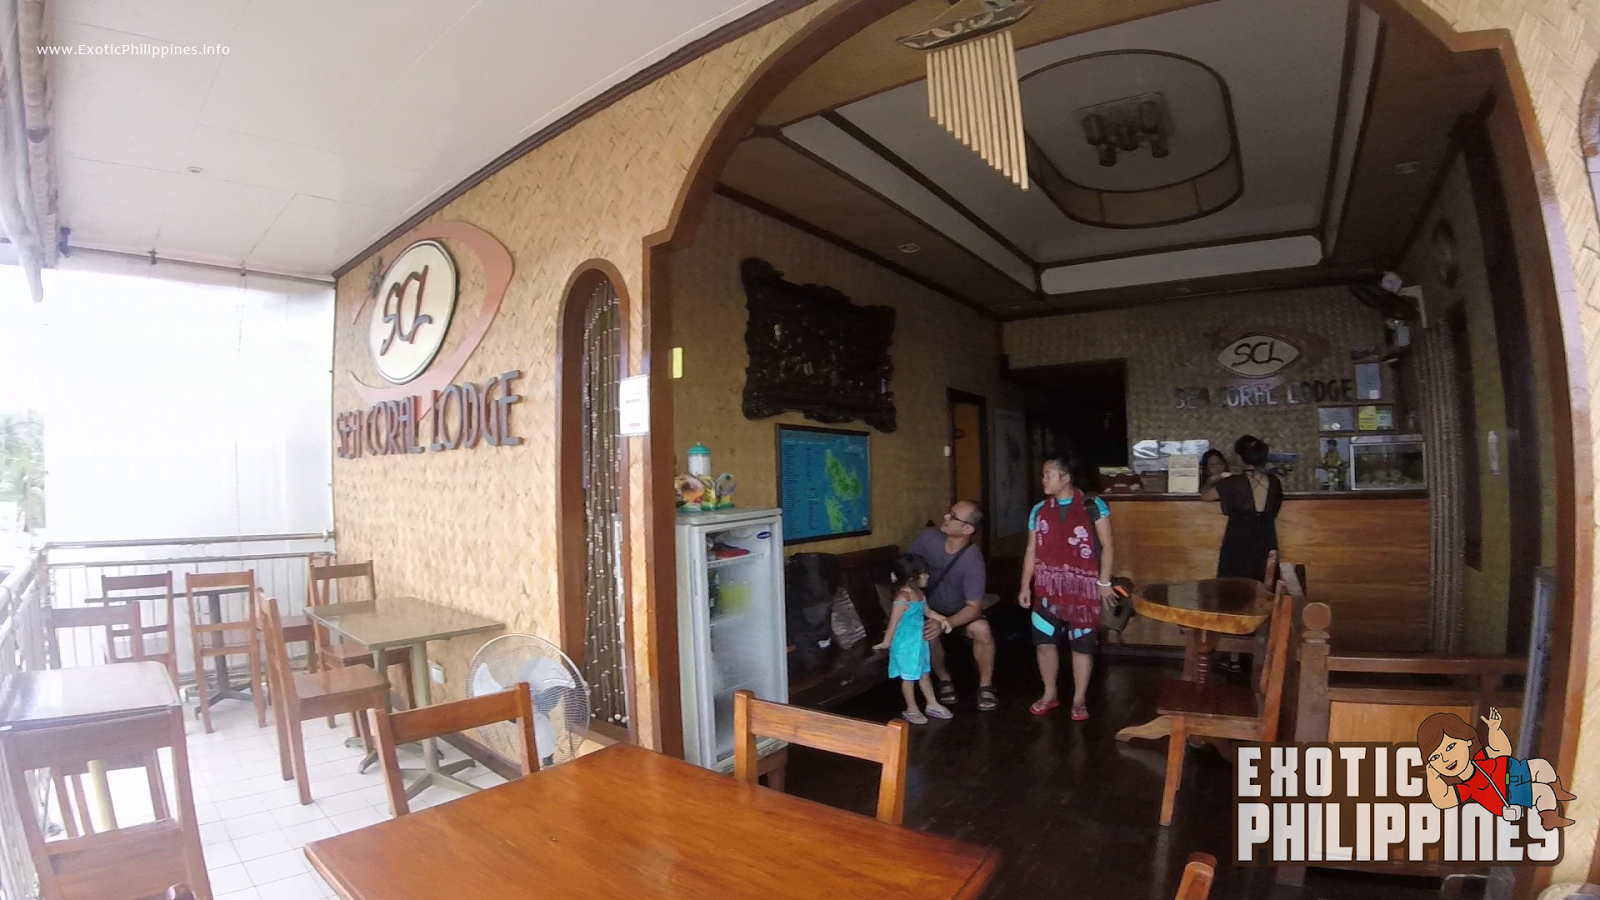 Sea Coral Lodge Coron Palawan Philippines